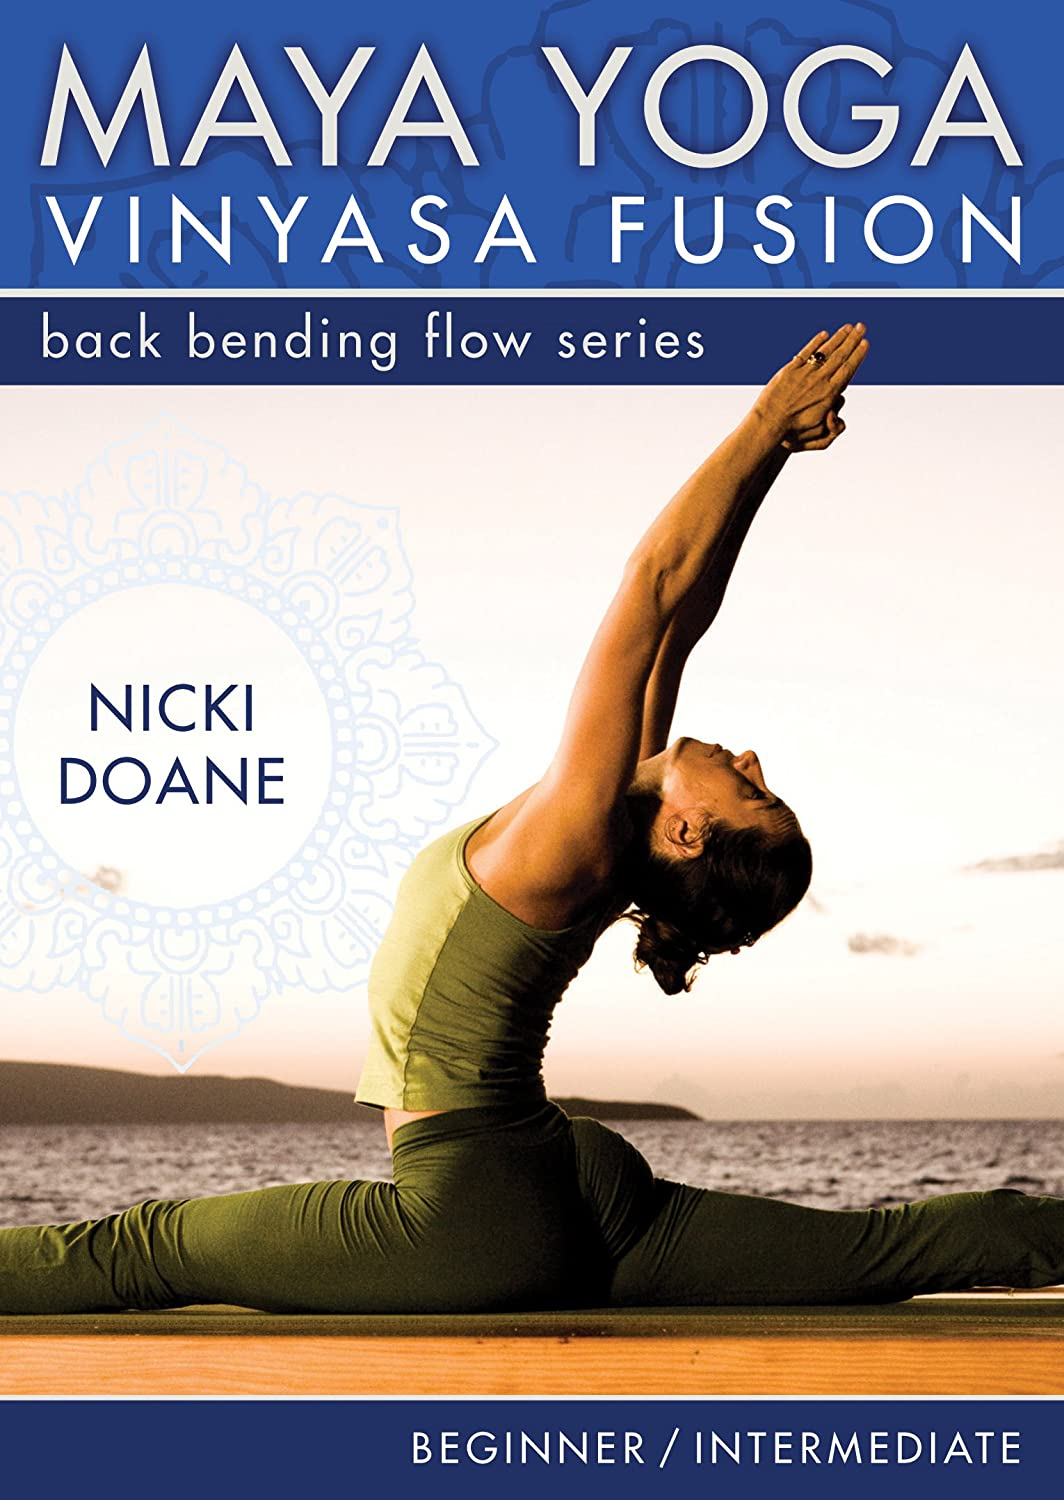 Amazon.com: Maya Yoga Vinyasa Fusion-Bending Back Flow ...